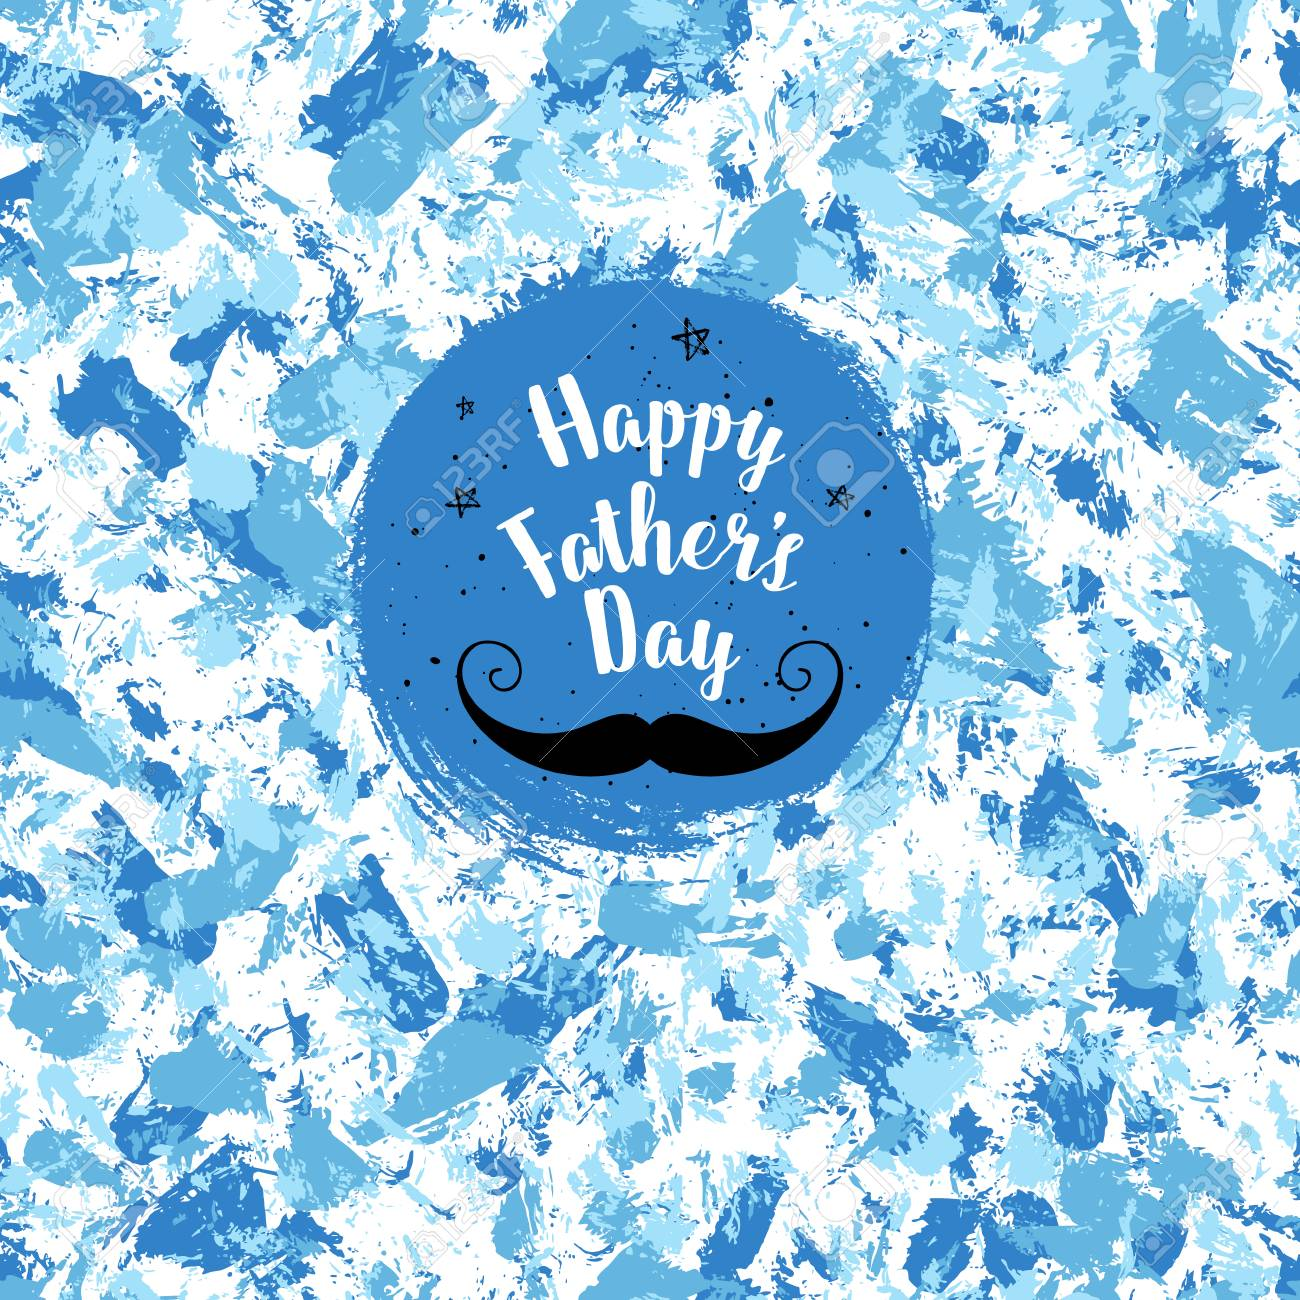 Happy fathers day greeting card vector background with mustache happy fathers day greeting card vector background with mustache stars hand lettering m4hsunfo Image collections